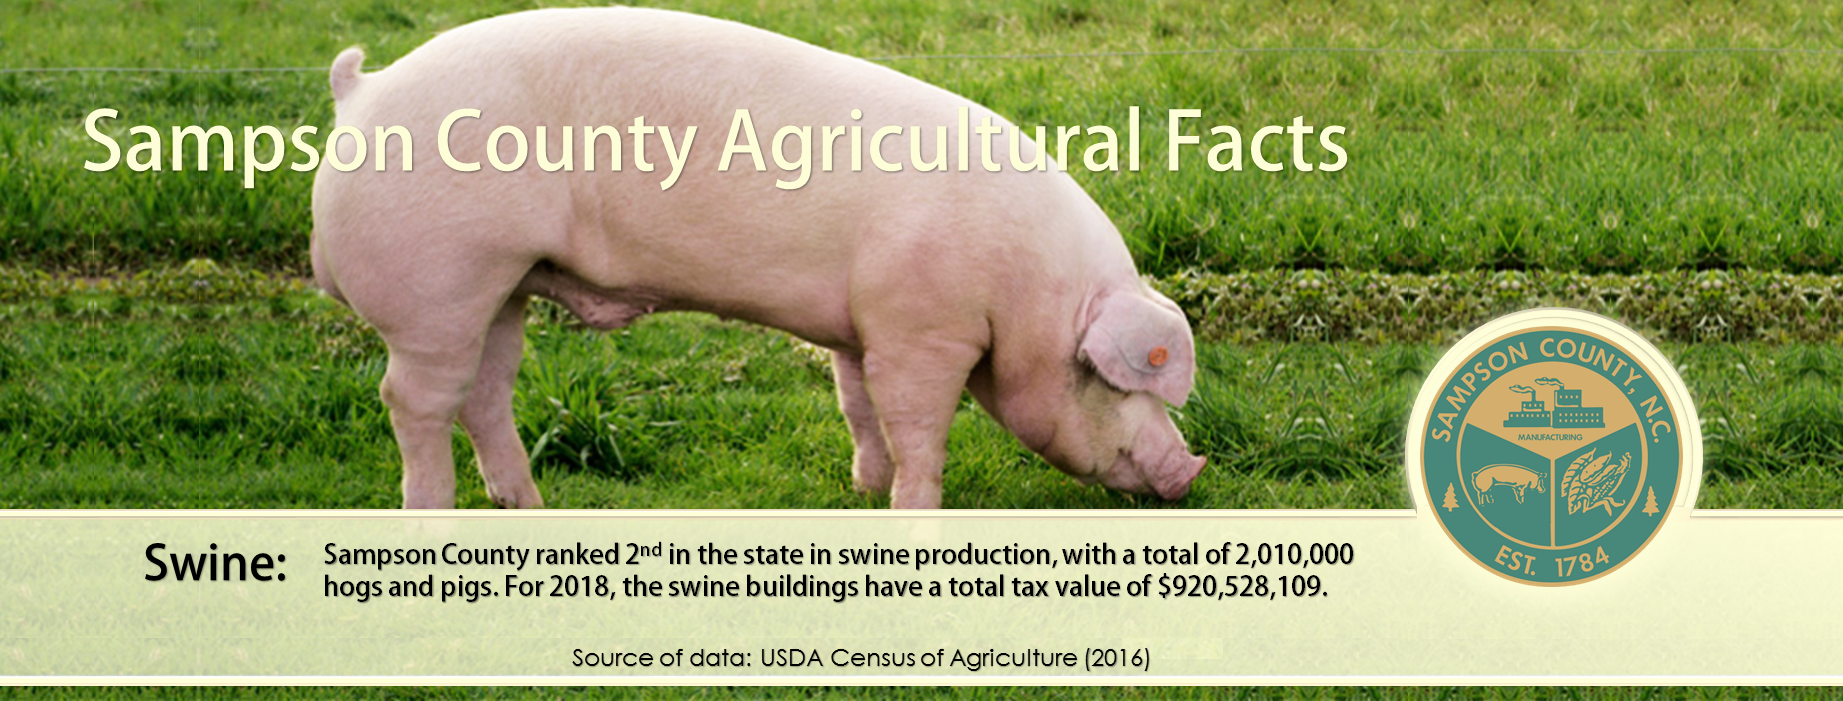 sampson county agricultural facts - hogs and pigs